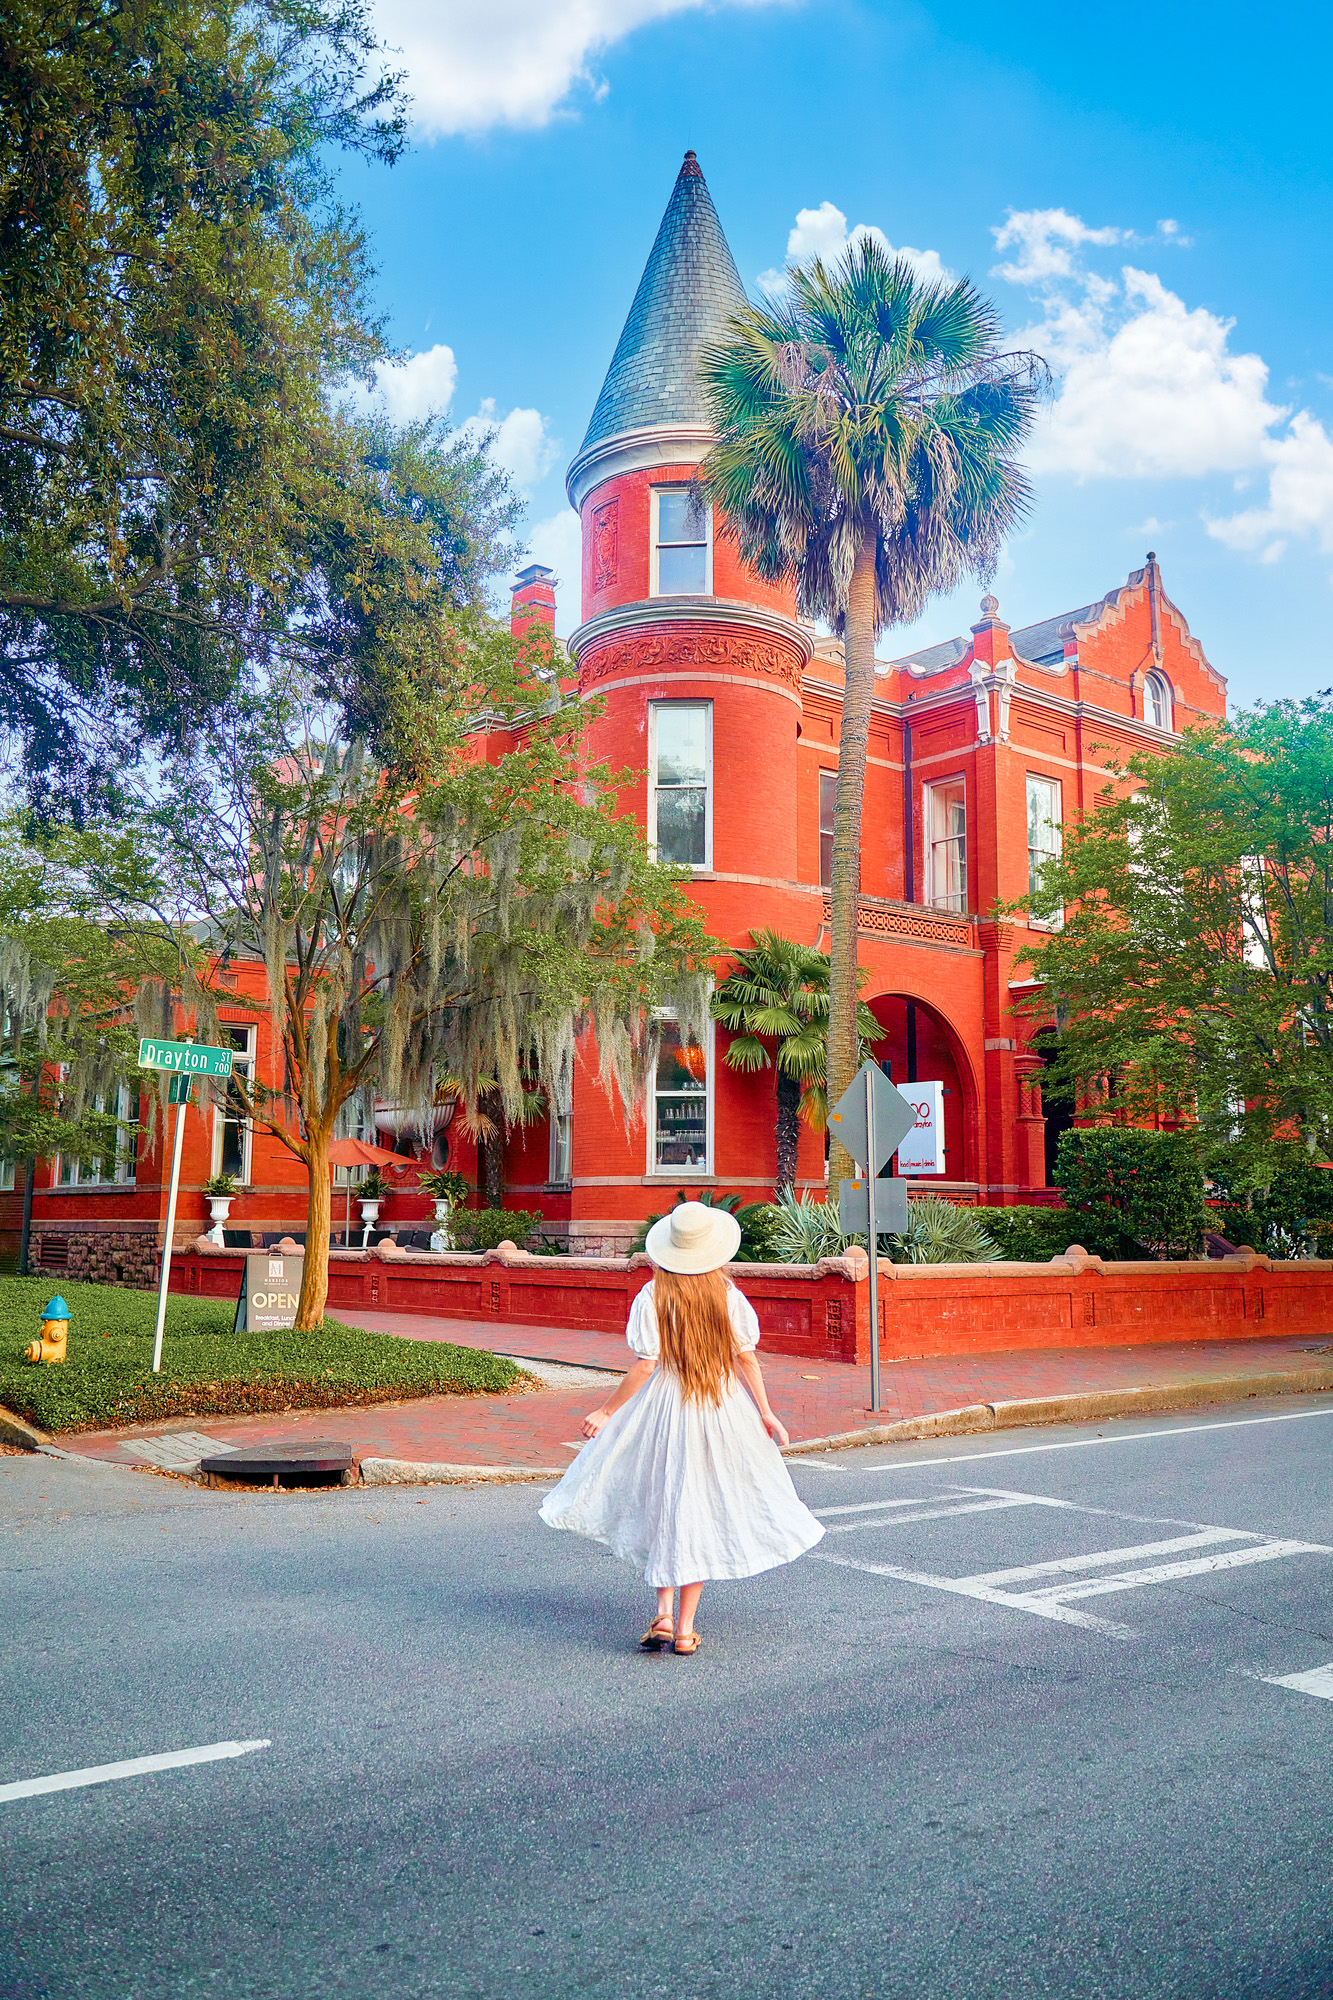 Phot o f a girl standing in front of The Mansion on Forsyth Park, one of the best places to stay in Savannah's Victorian District